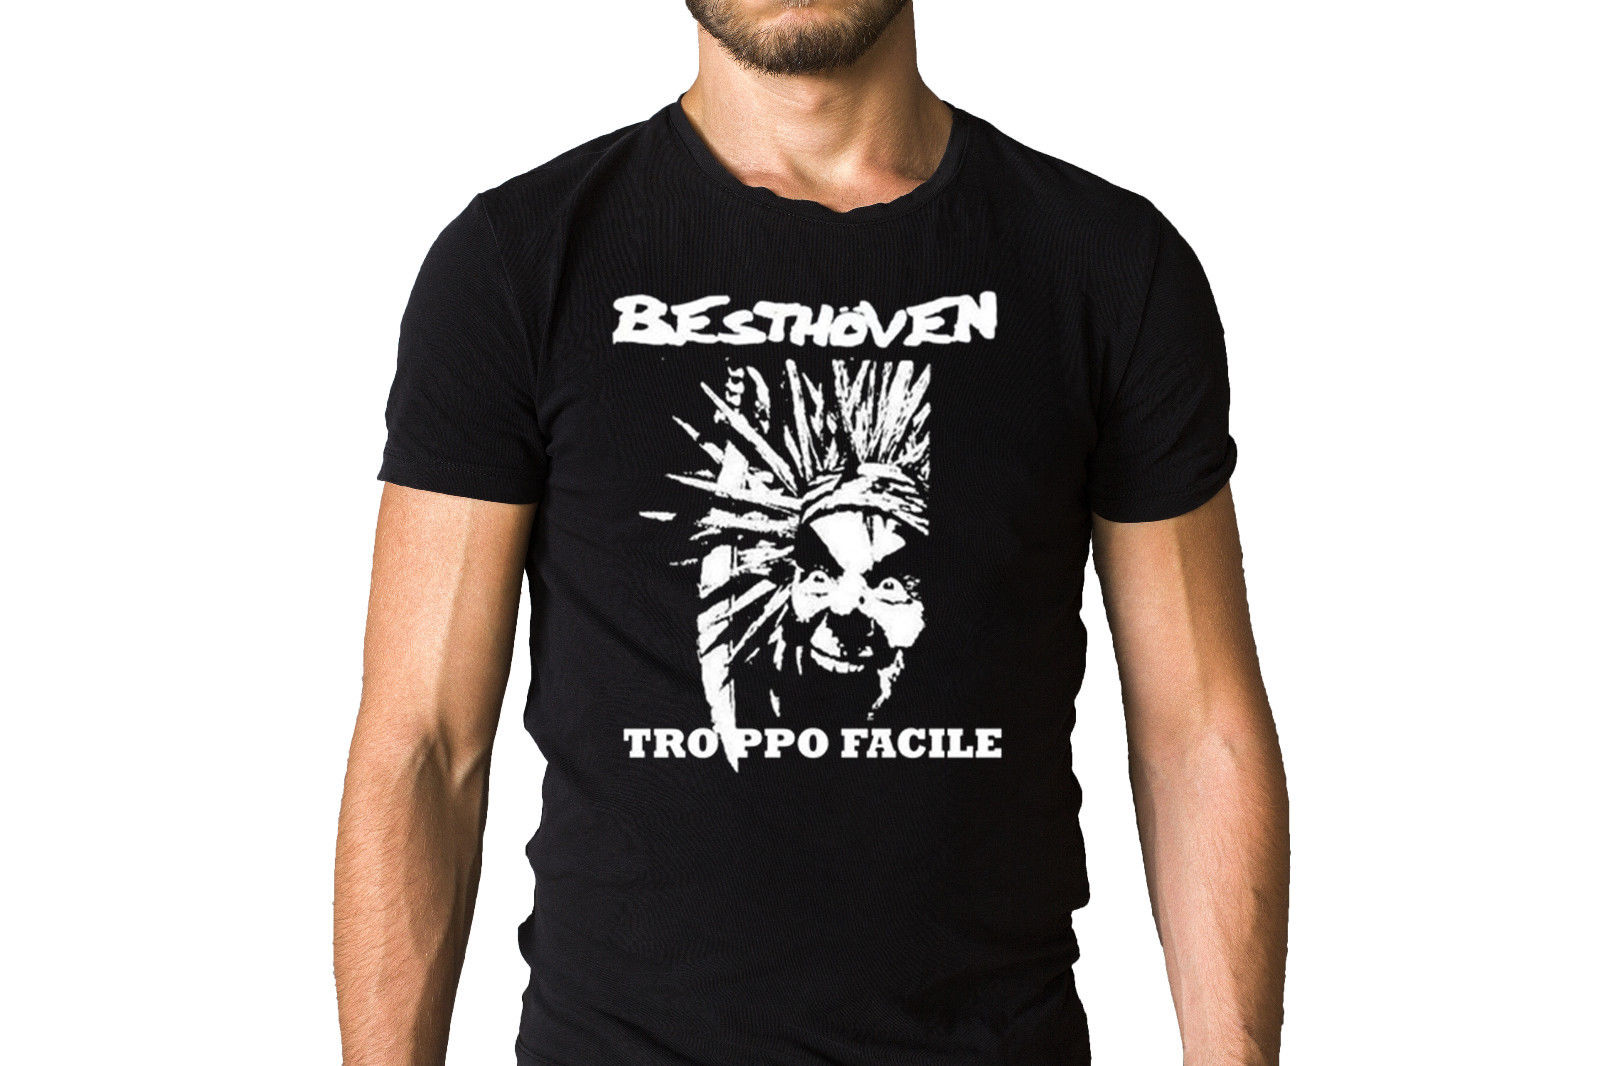 Besthoven Troppo Facile Punk Face T-Shirt 3D T Shirt Men Plus Size Cotton Tops Tee Round Neck Clothes Western Style